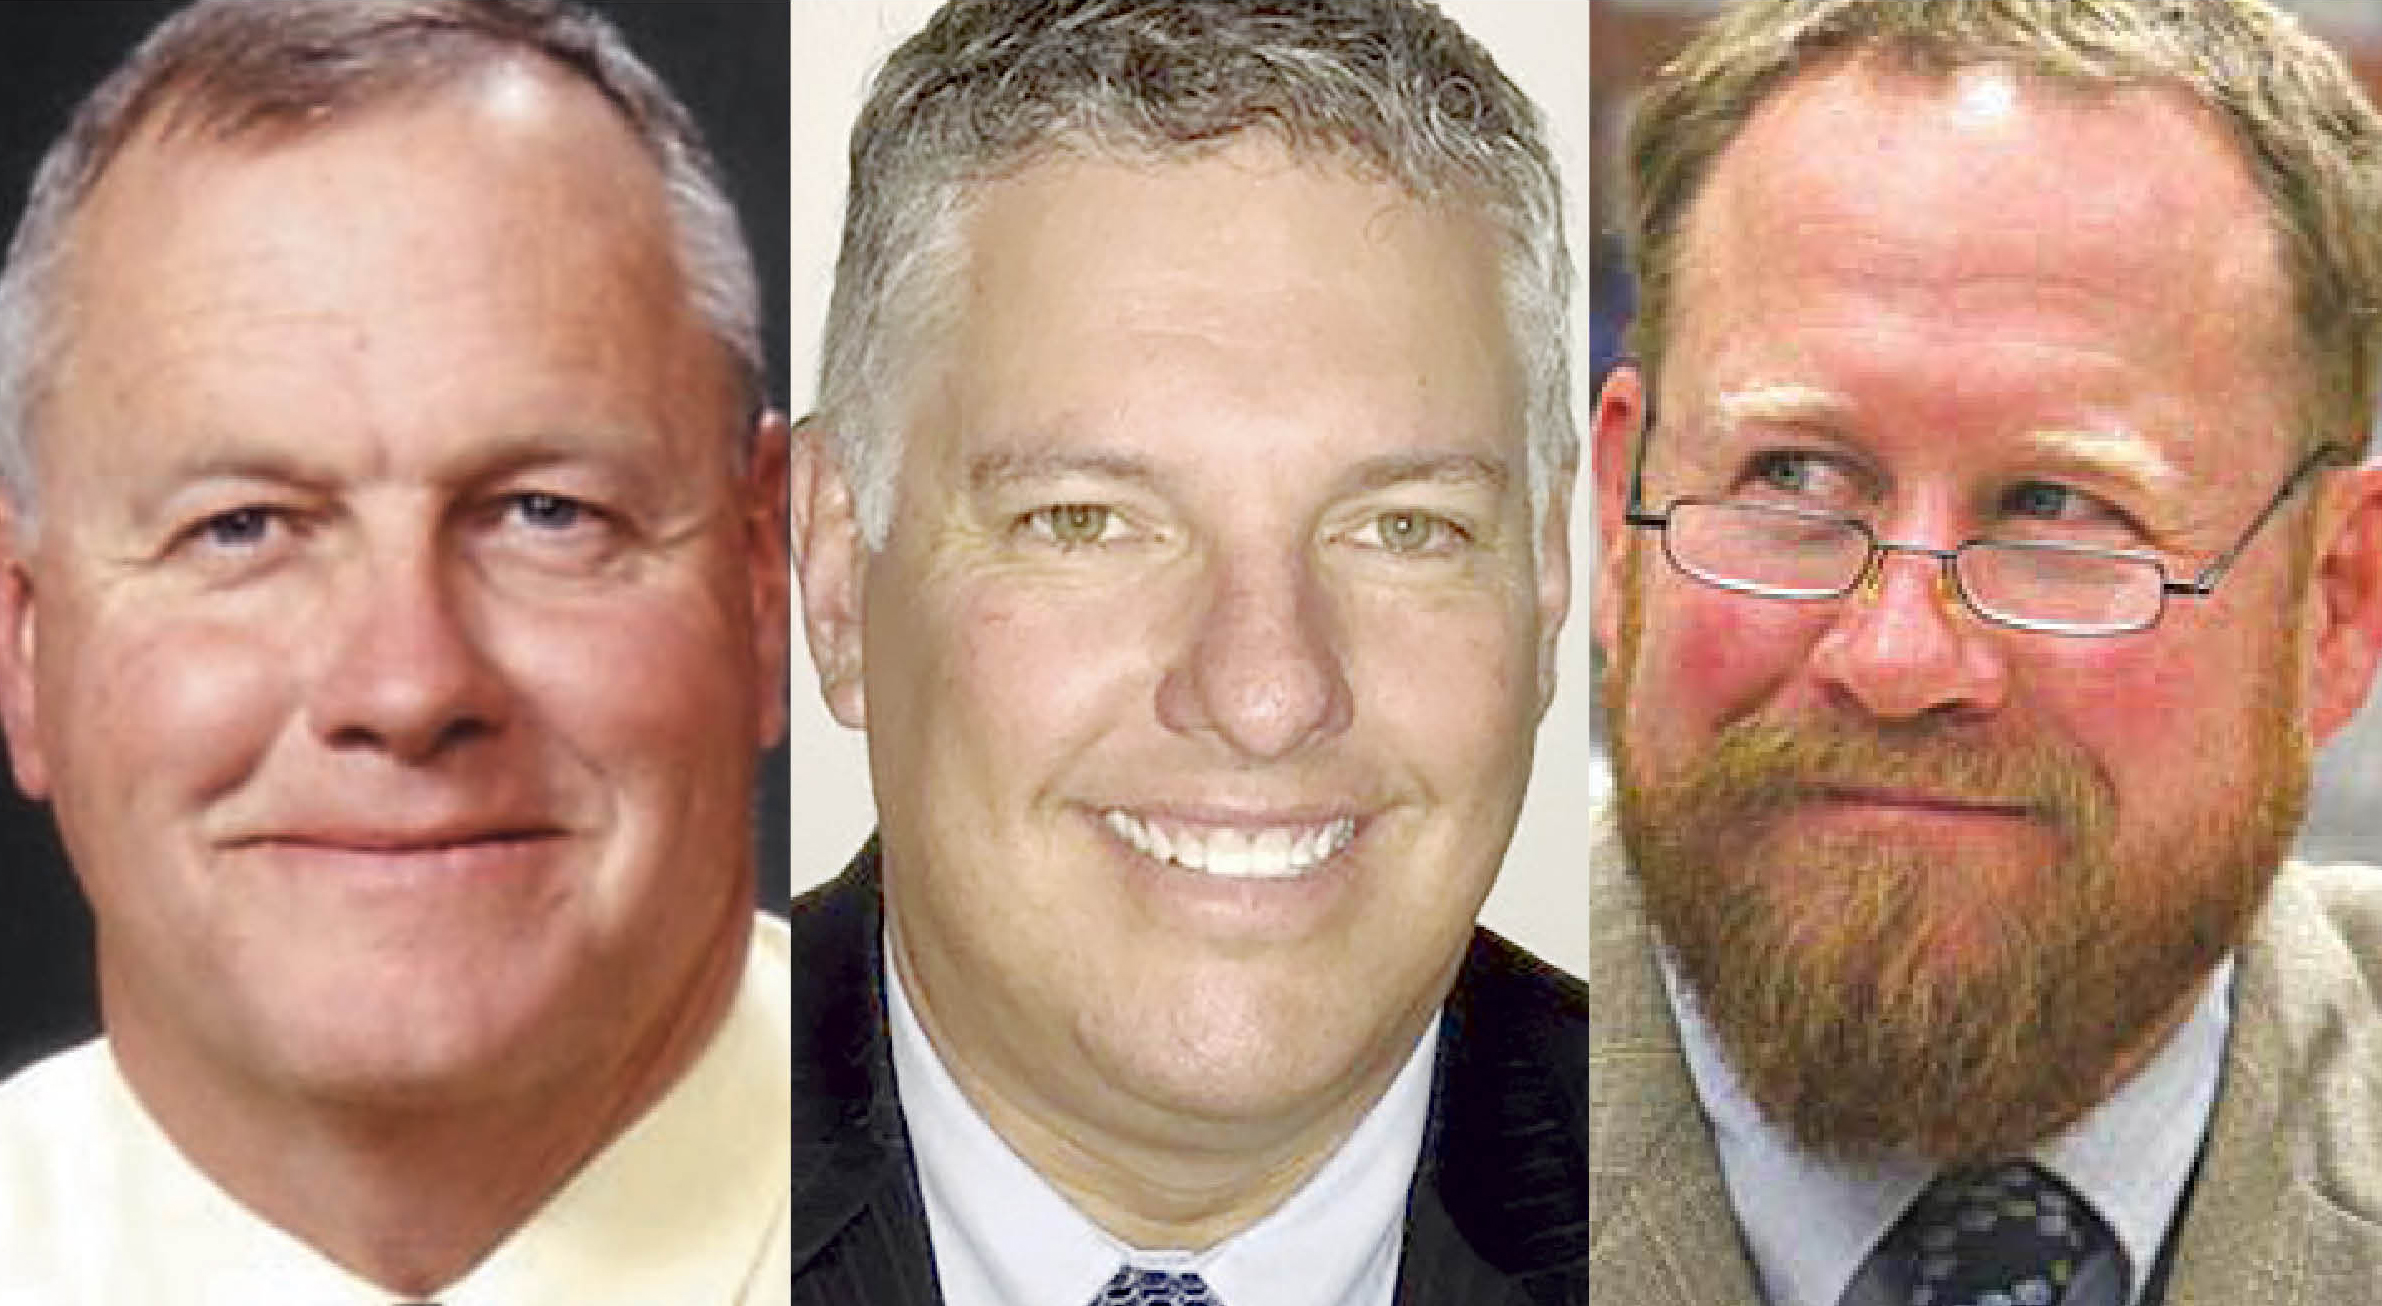 Quad-city superintendents rally to develop COVID-19 reopening plans